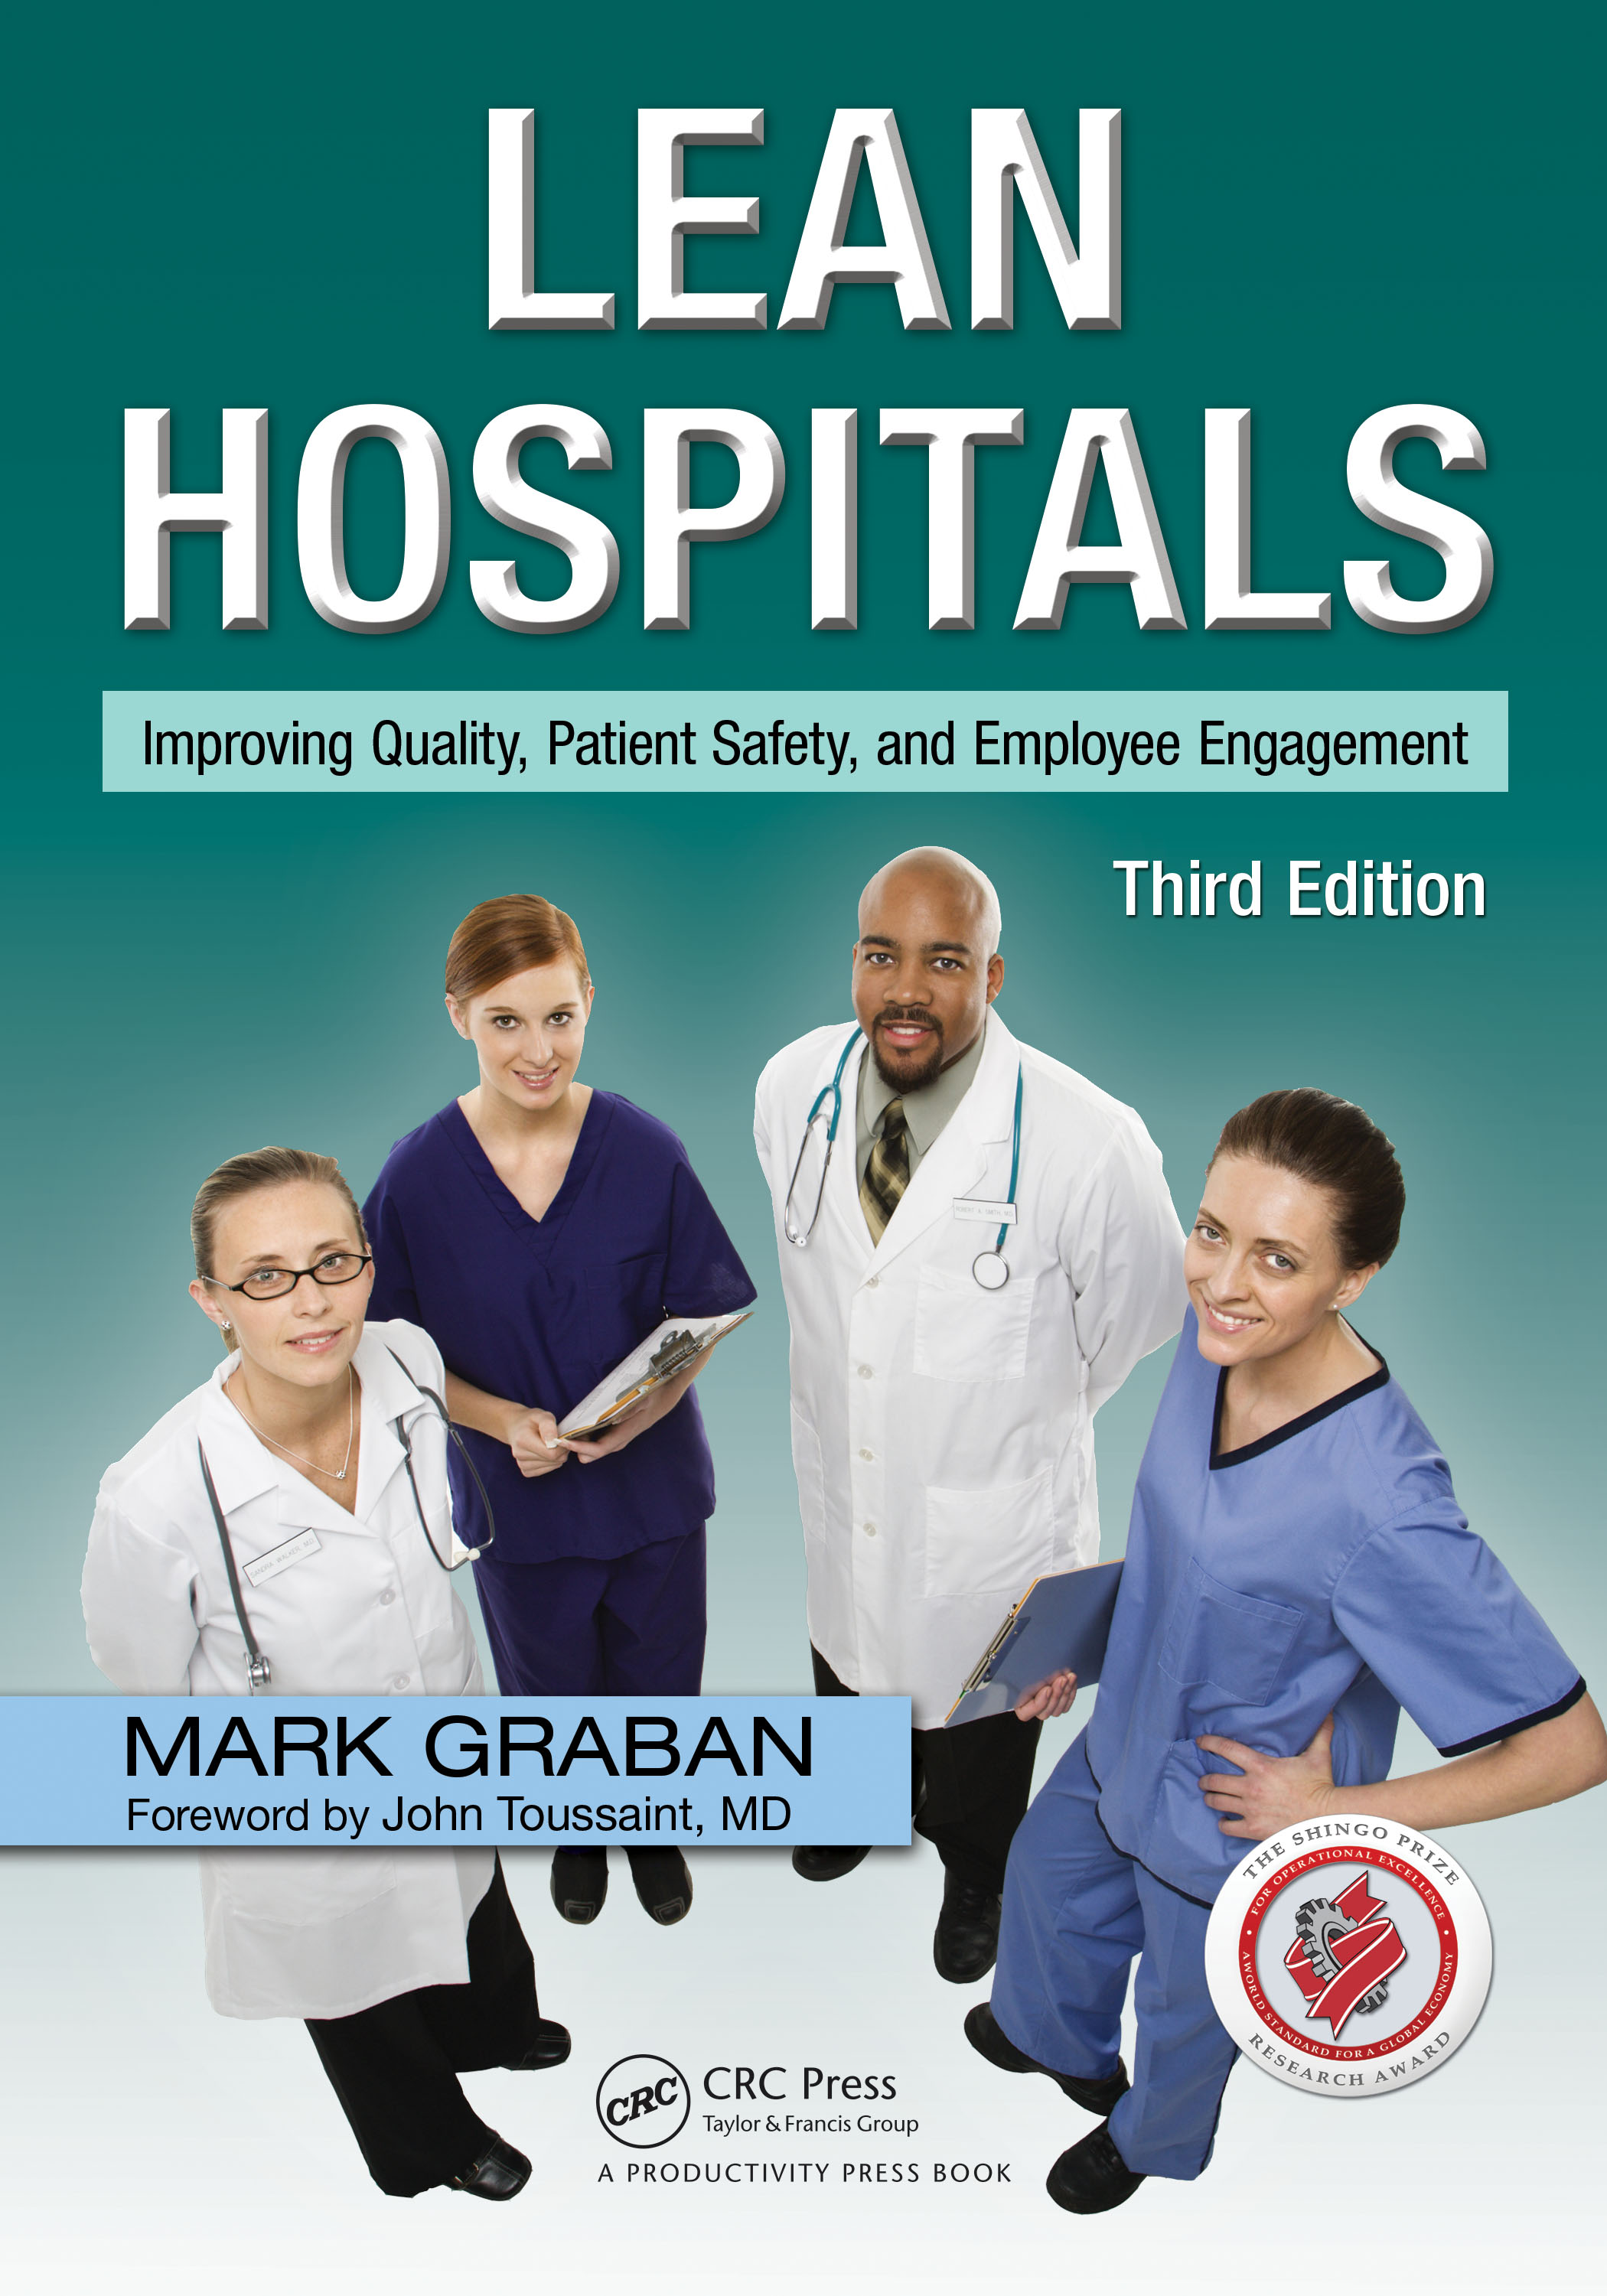 Lean_Hospitals_3rd_Edition_Cover.jpg